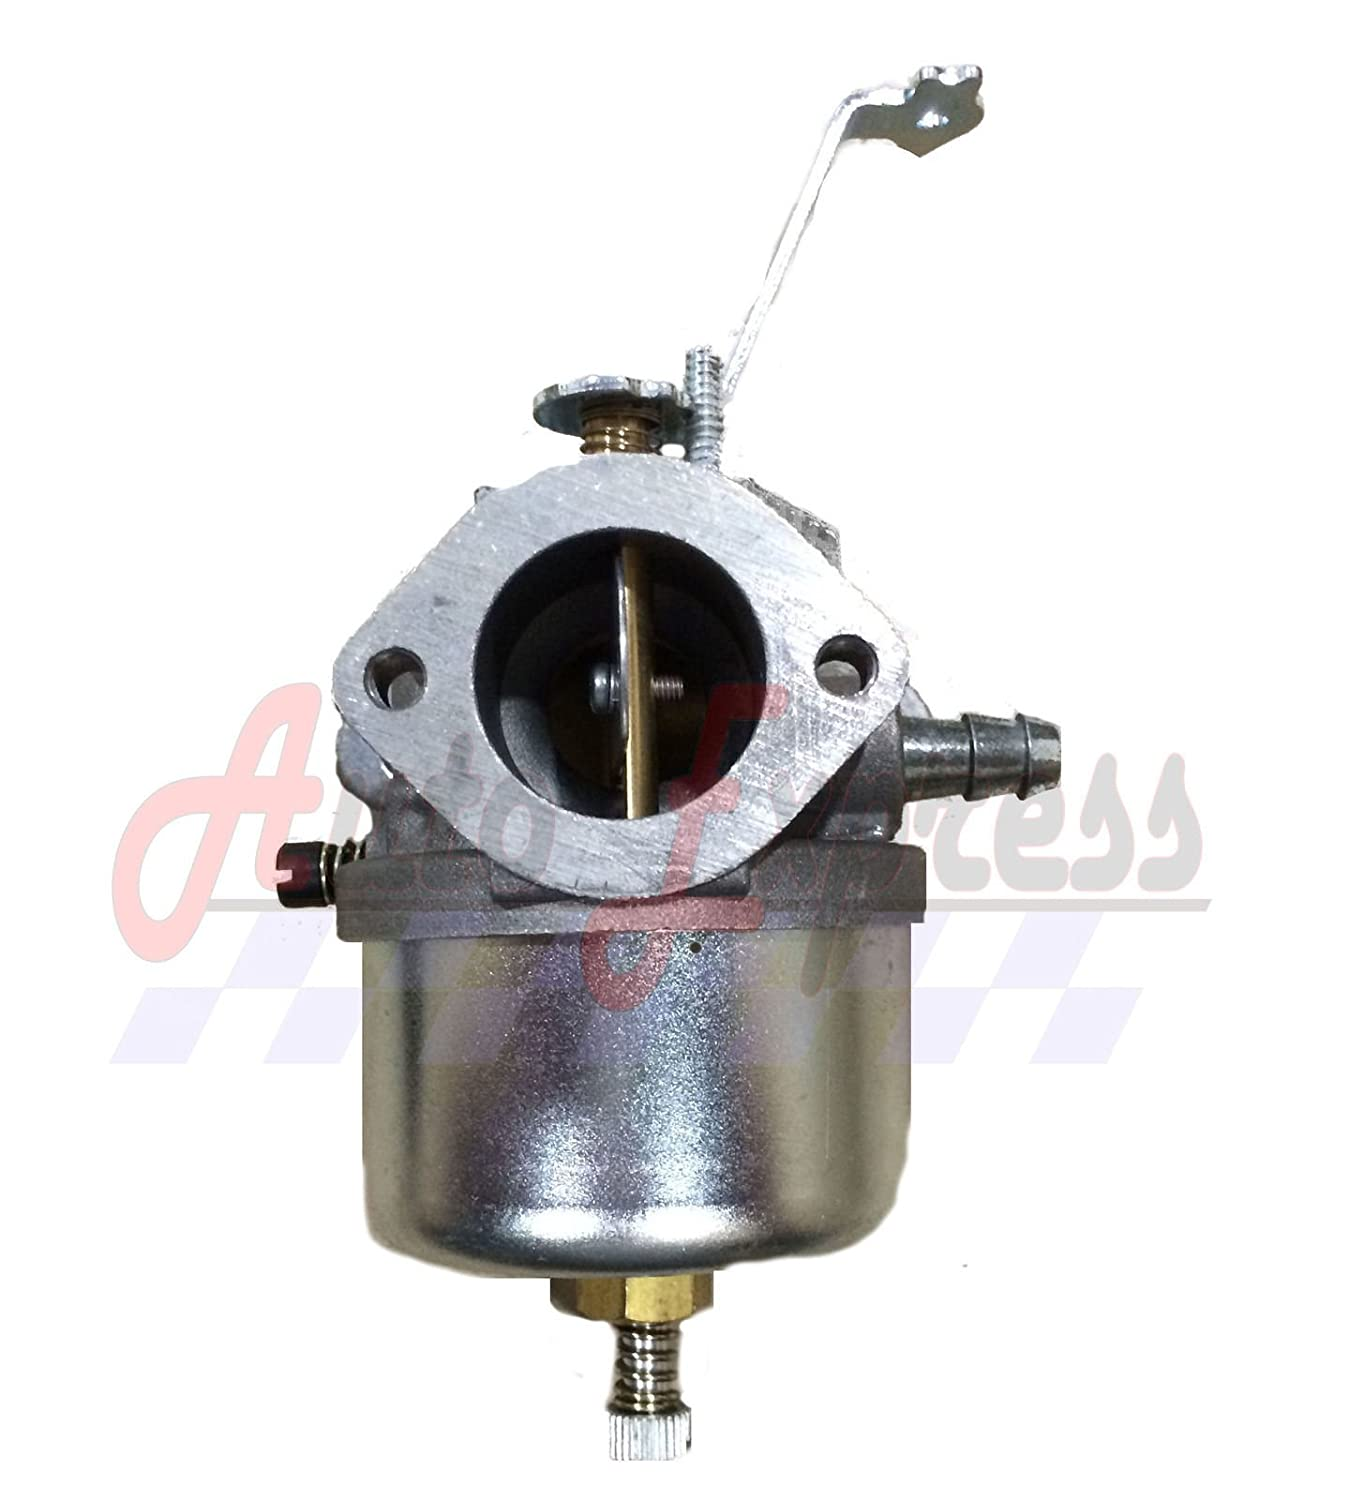 Carburetor Carb For Tecumseh 631828 631067 Fits H50 Diagram Parts List Model H6075506n Tecumsehparts All H60 Engines By Ezzy Lift Garden Outdoor